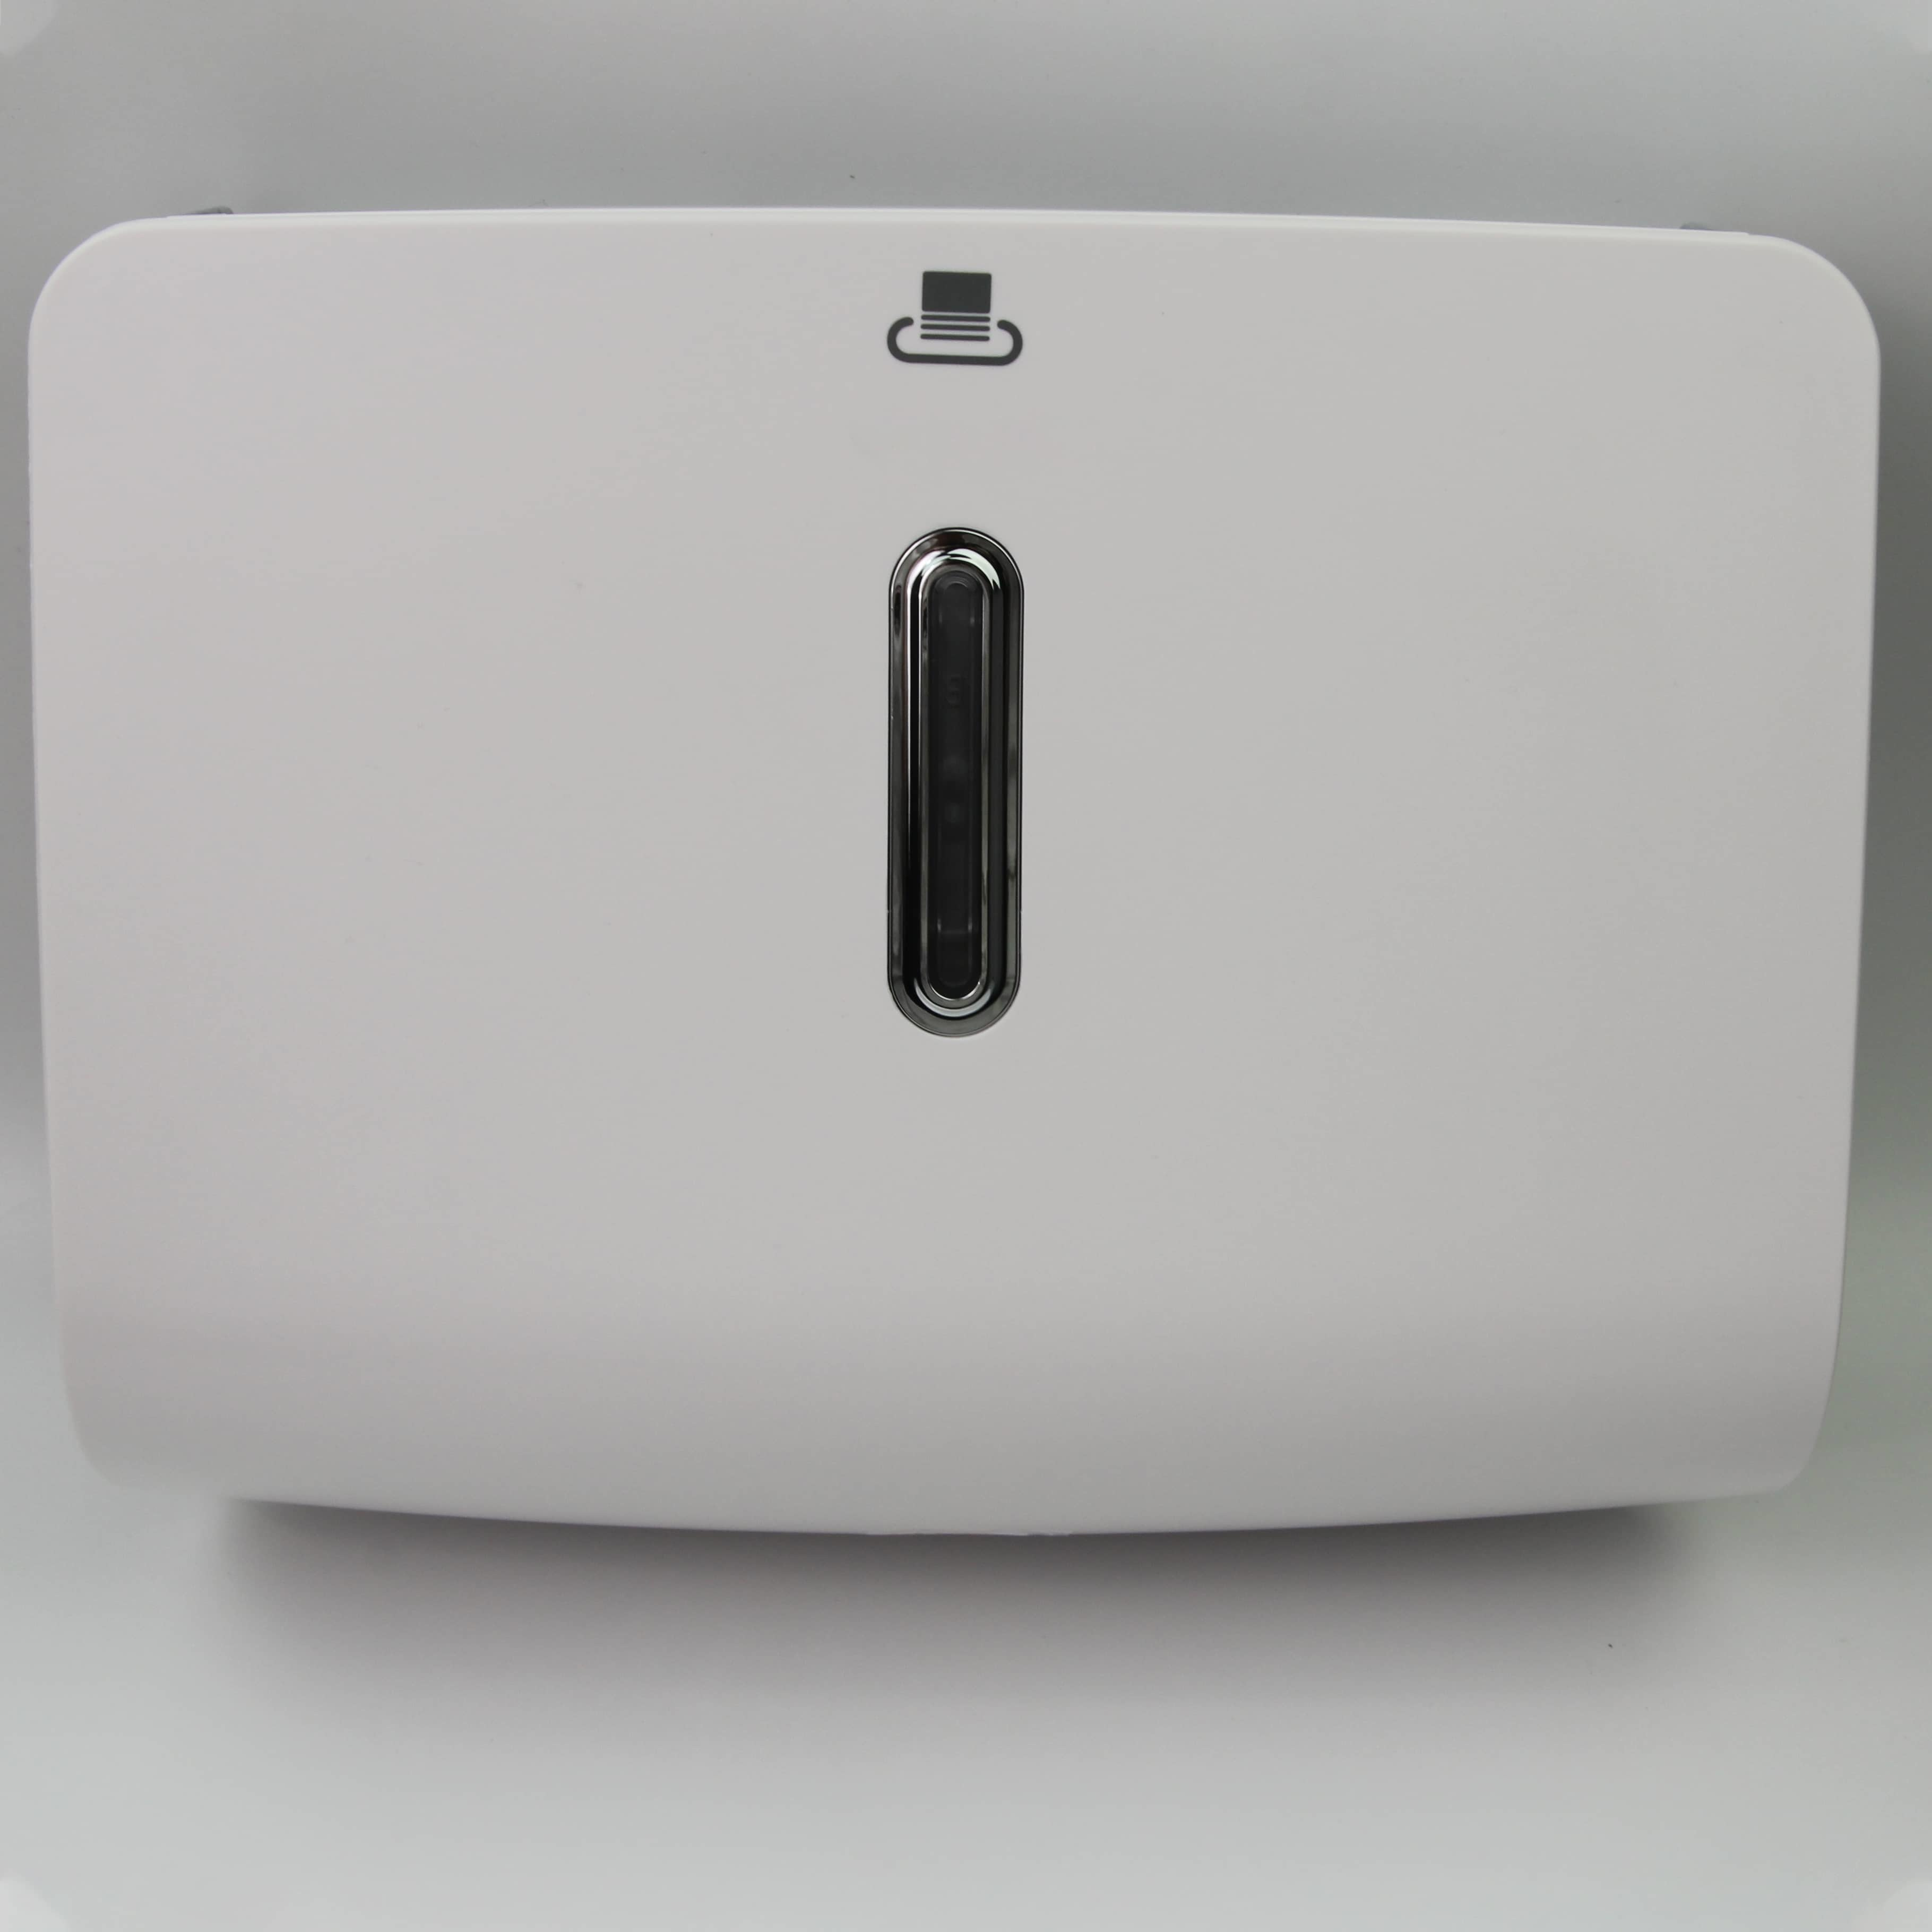 China Automatic Roll Tissue Paper Towel Dispenser China Paper Towel Dispenser Paper Dispensers